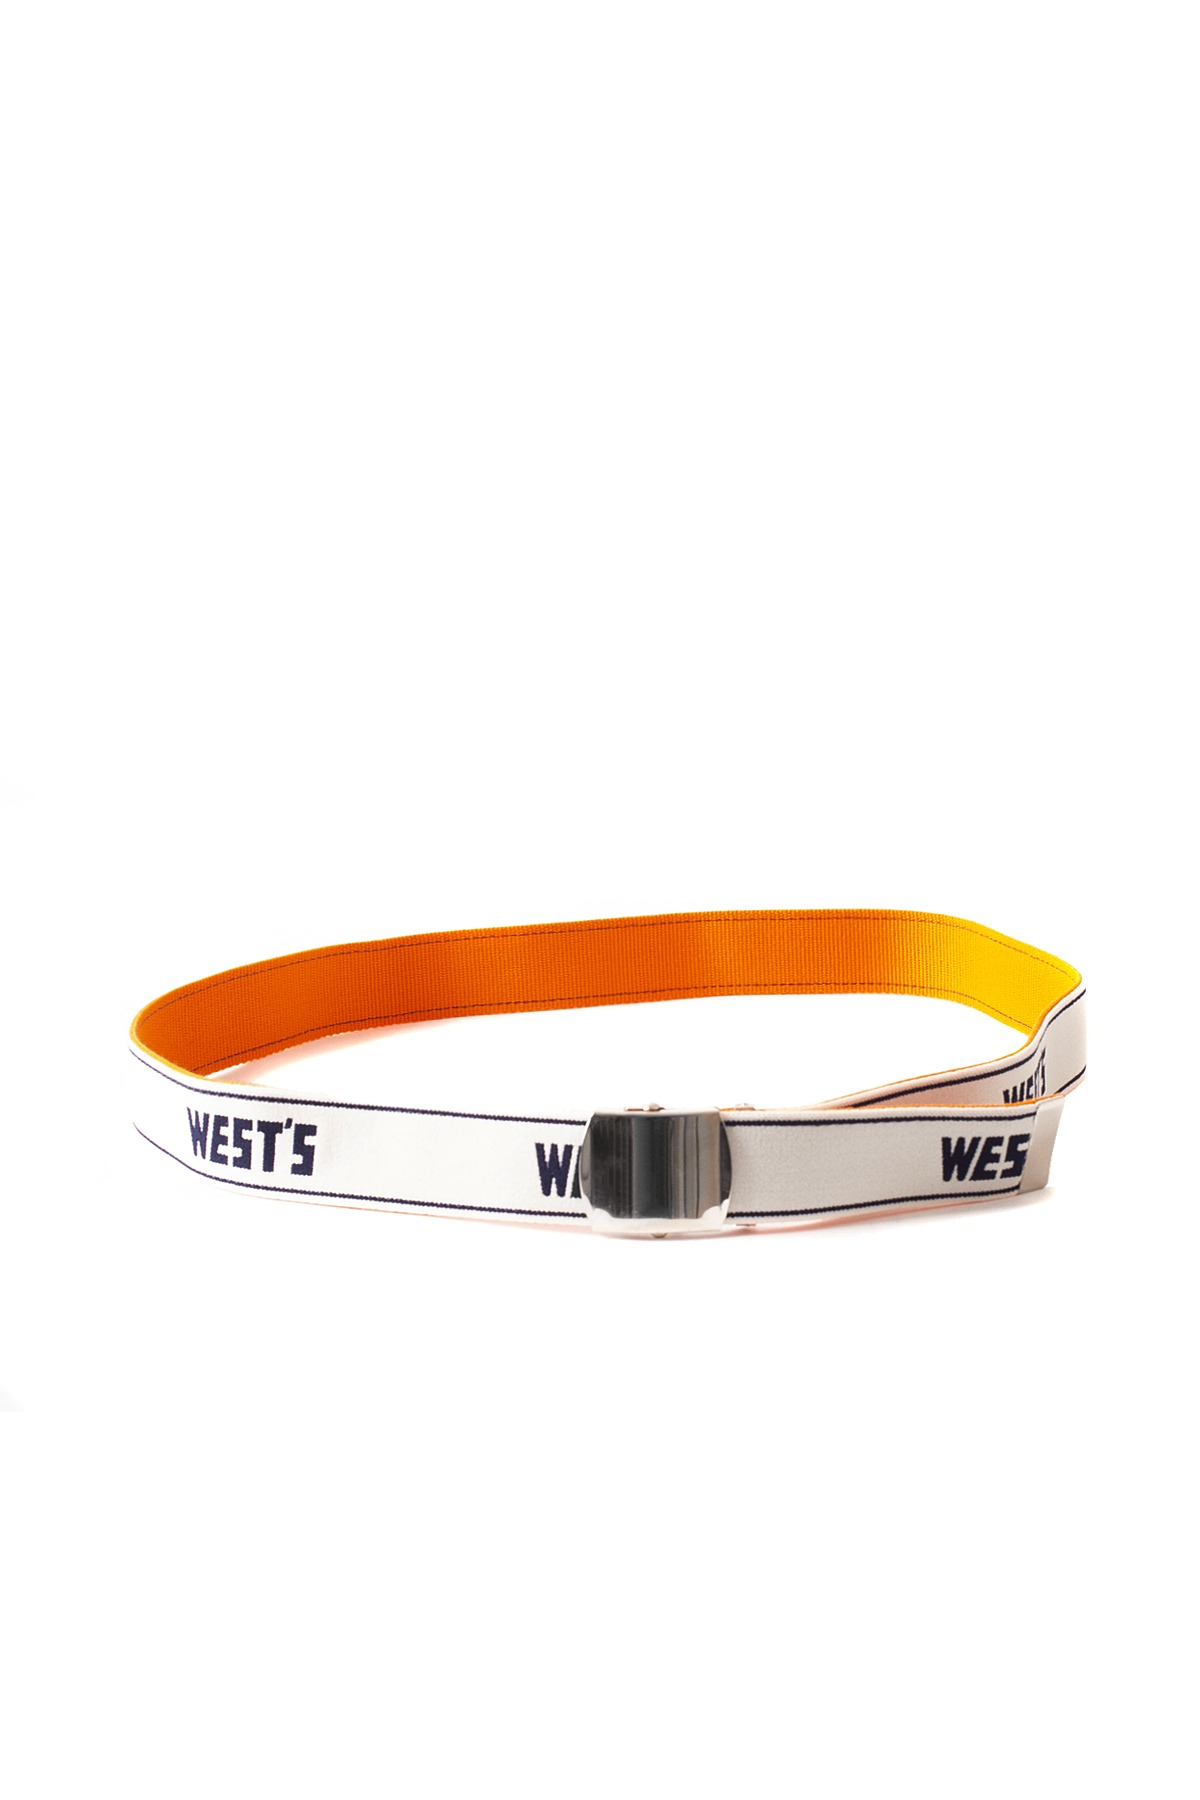 WESTOVERALLS : West's Gi Belt (Orange)